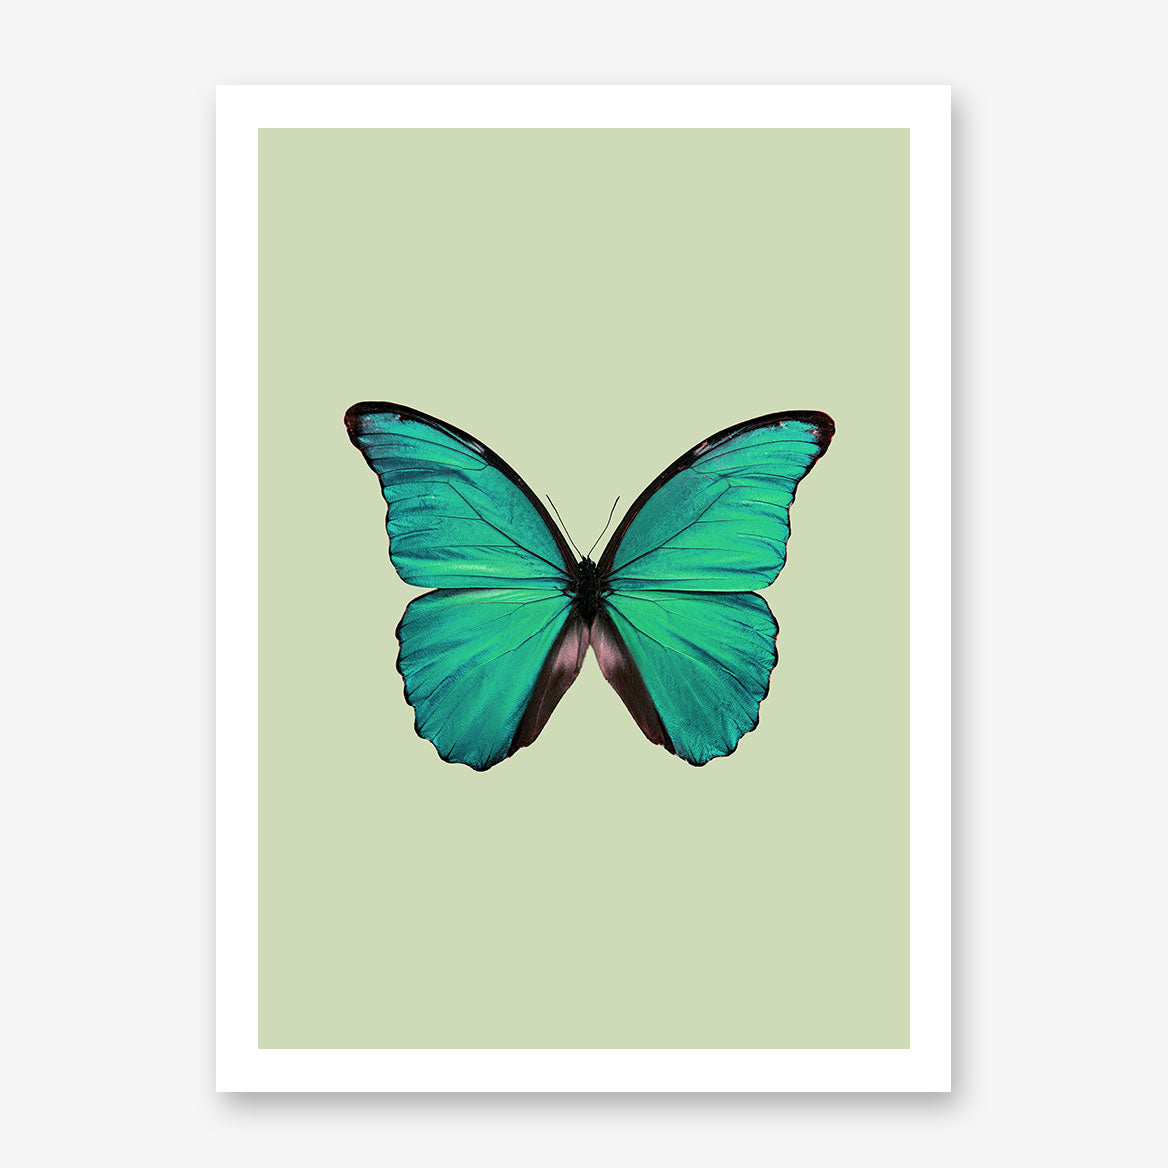 Gorgeous poster print with a green butterfly and background.